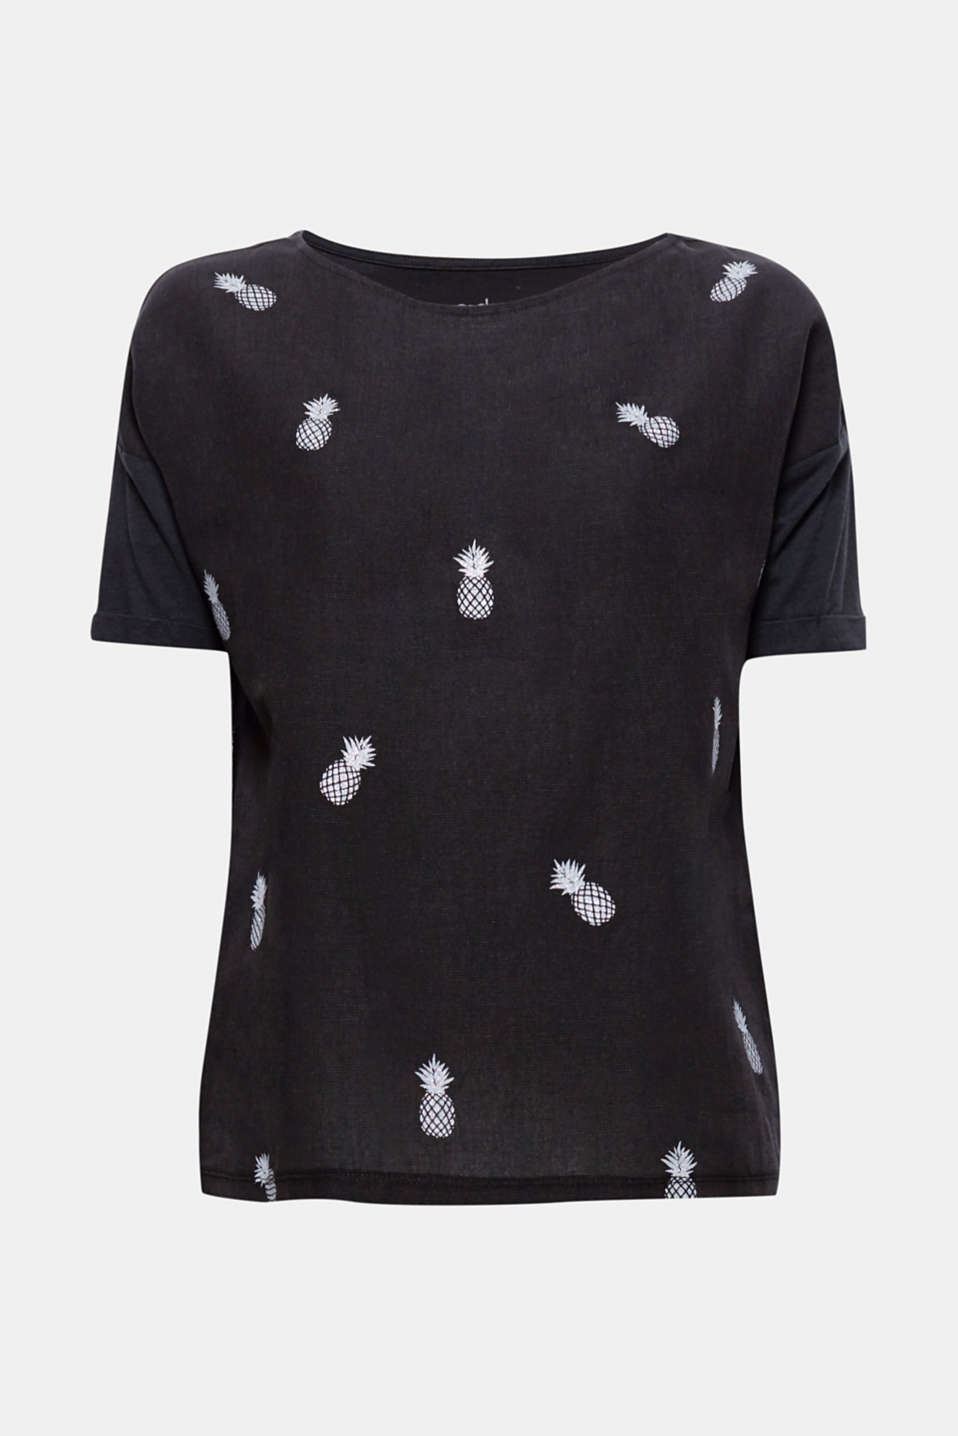 This T-shirt with a versatile print motif is comfortable, trendy and catches the eye.